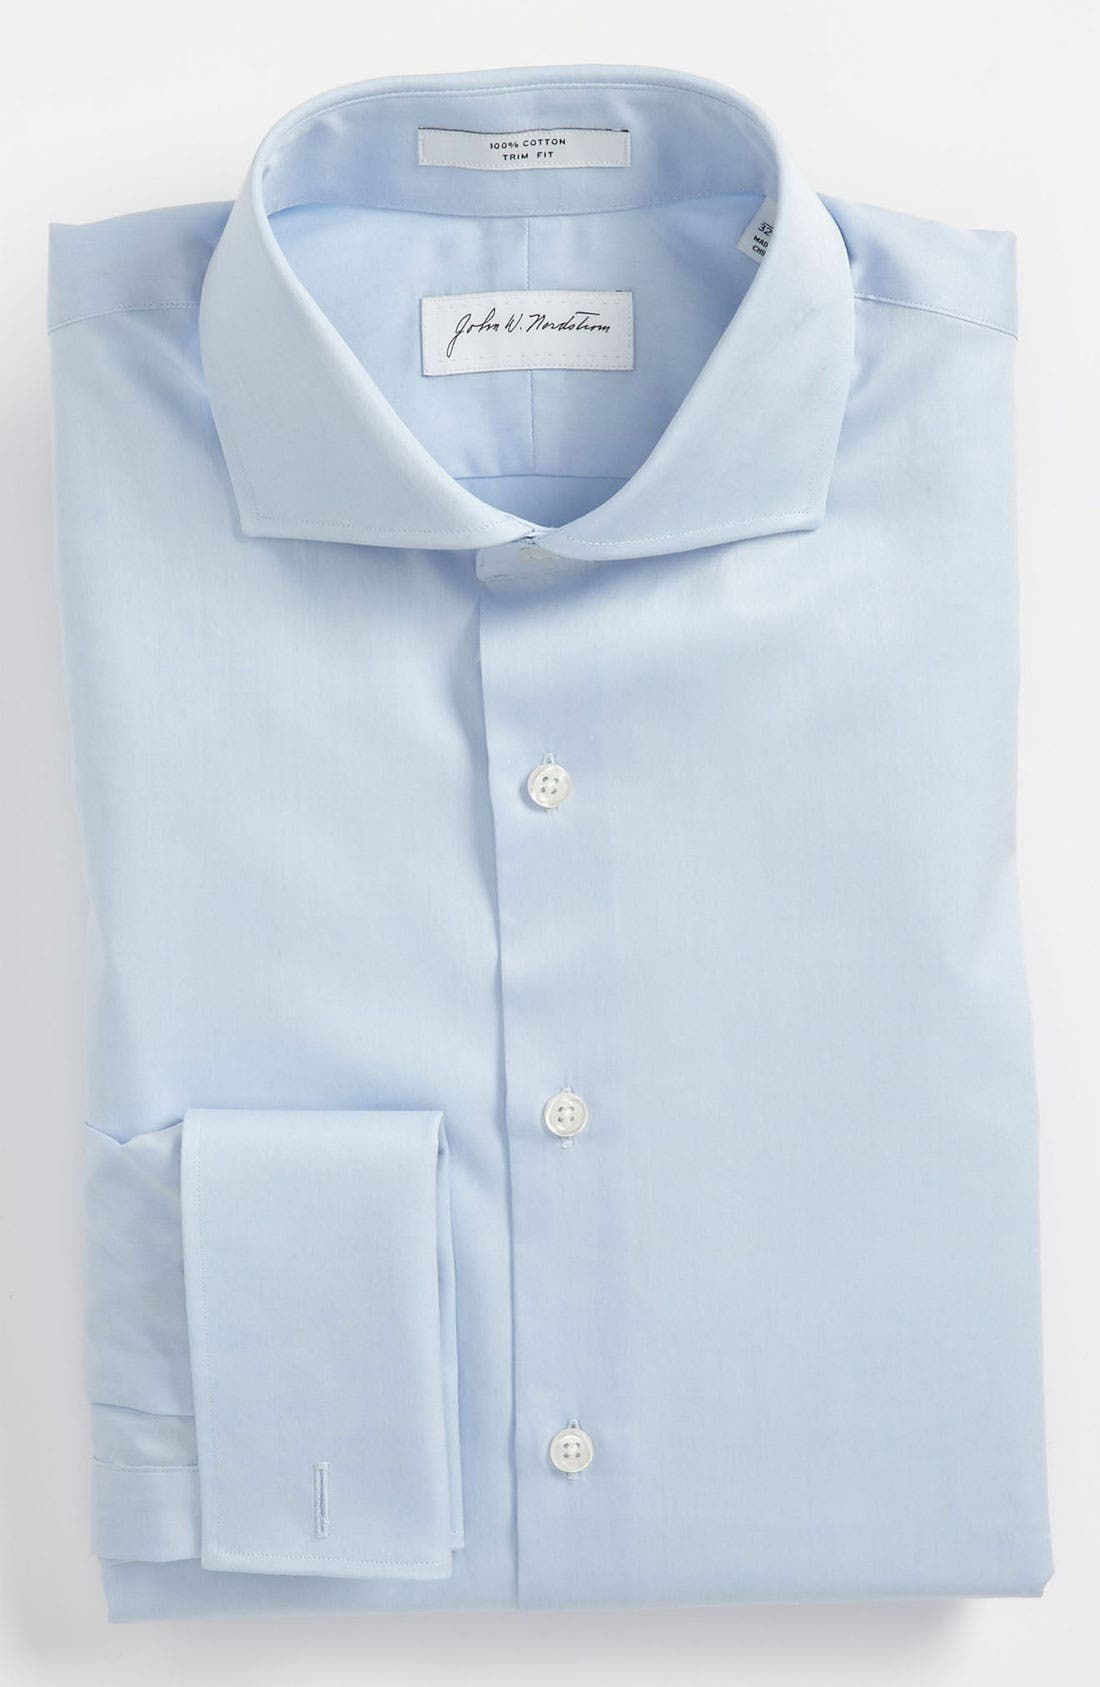 Alternate Image 1 Selected - John W. Nordstrom® Trim Fit French Cuff Dress Shirt (Online Only)